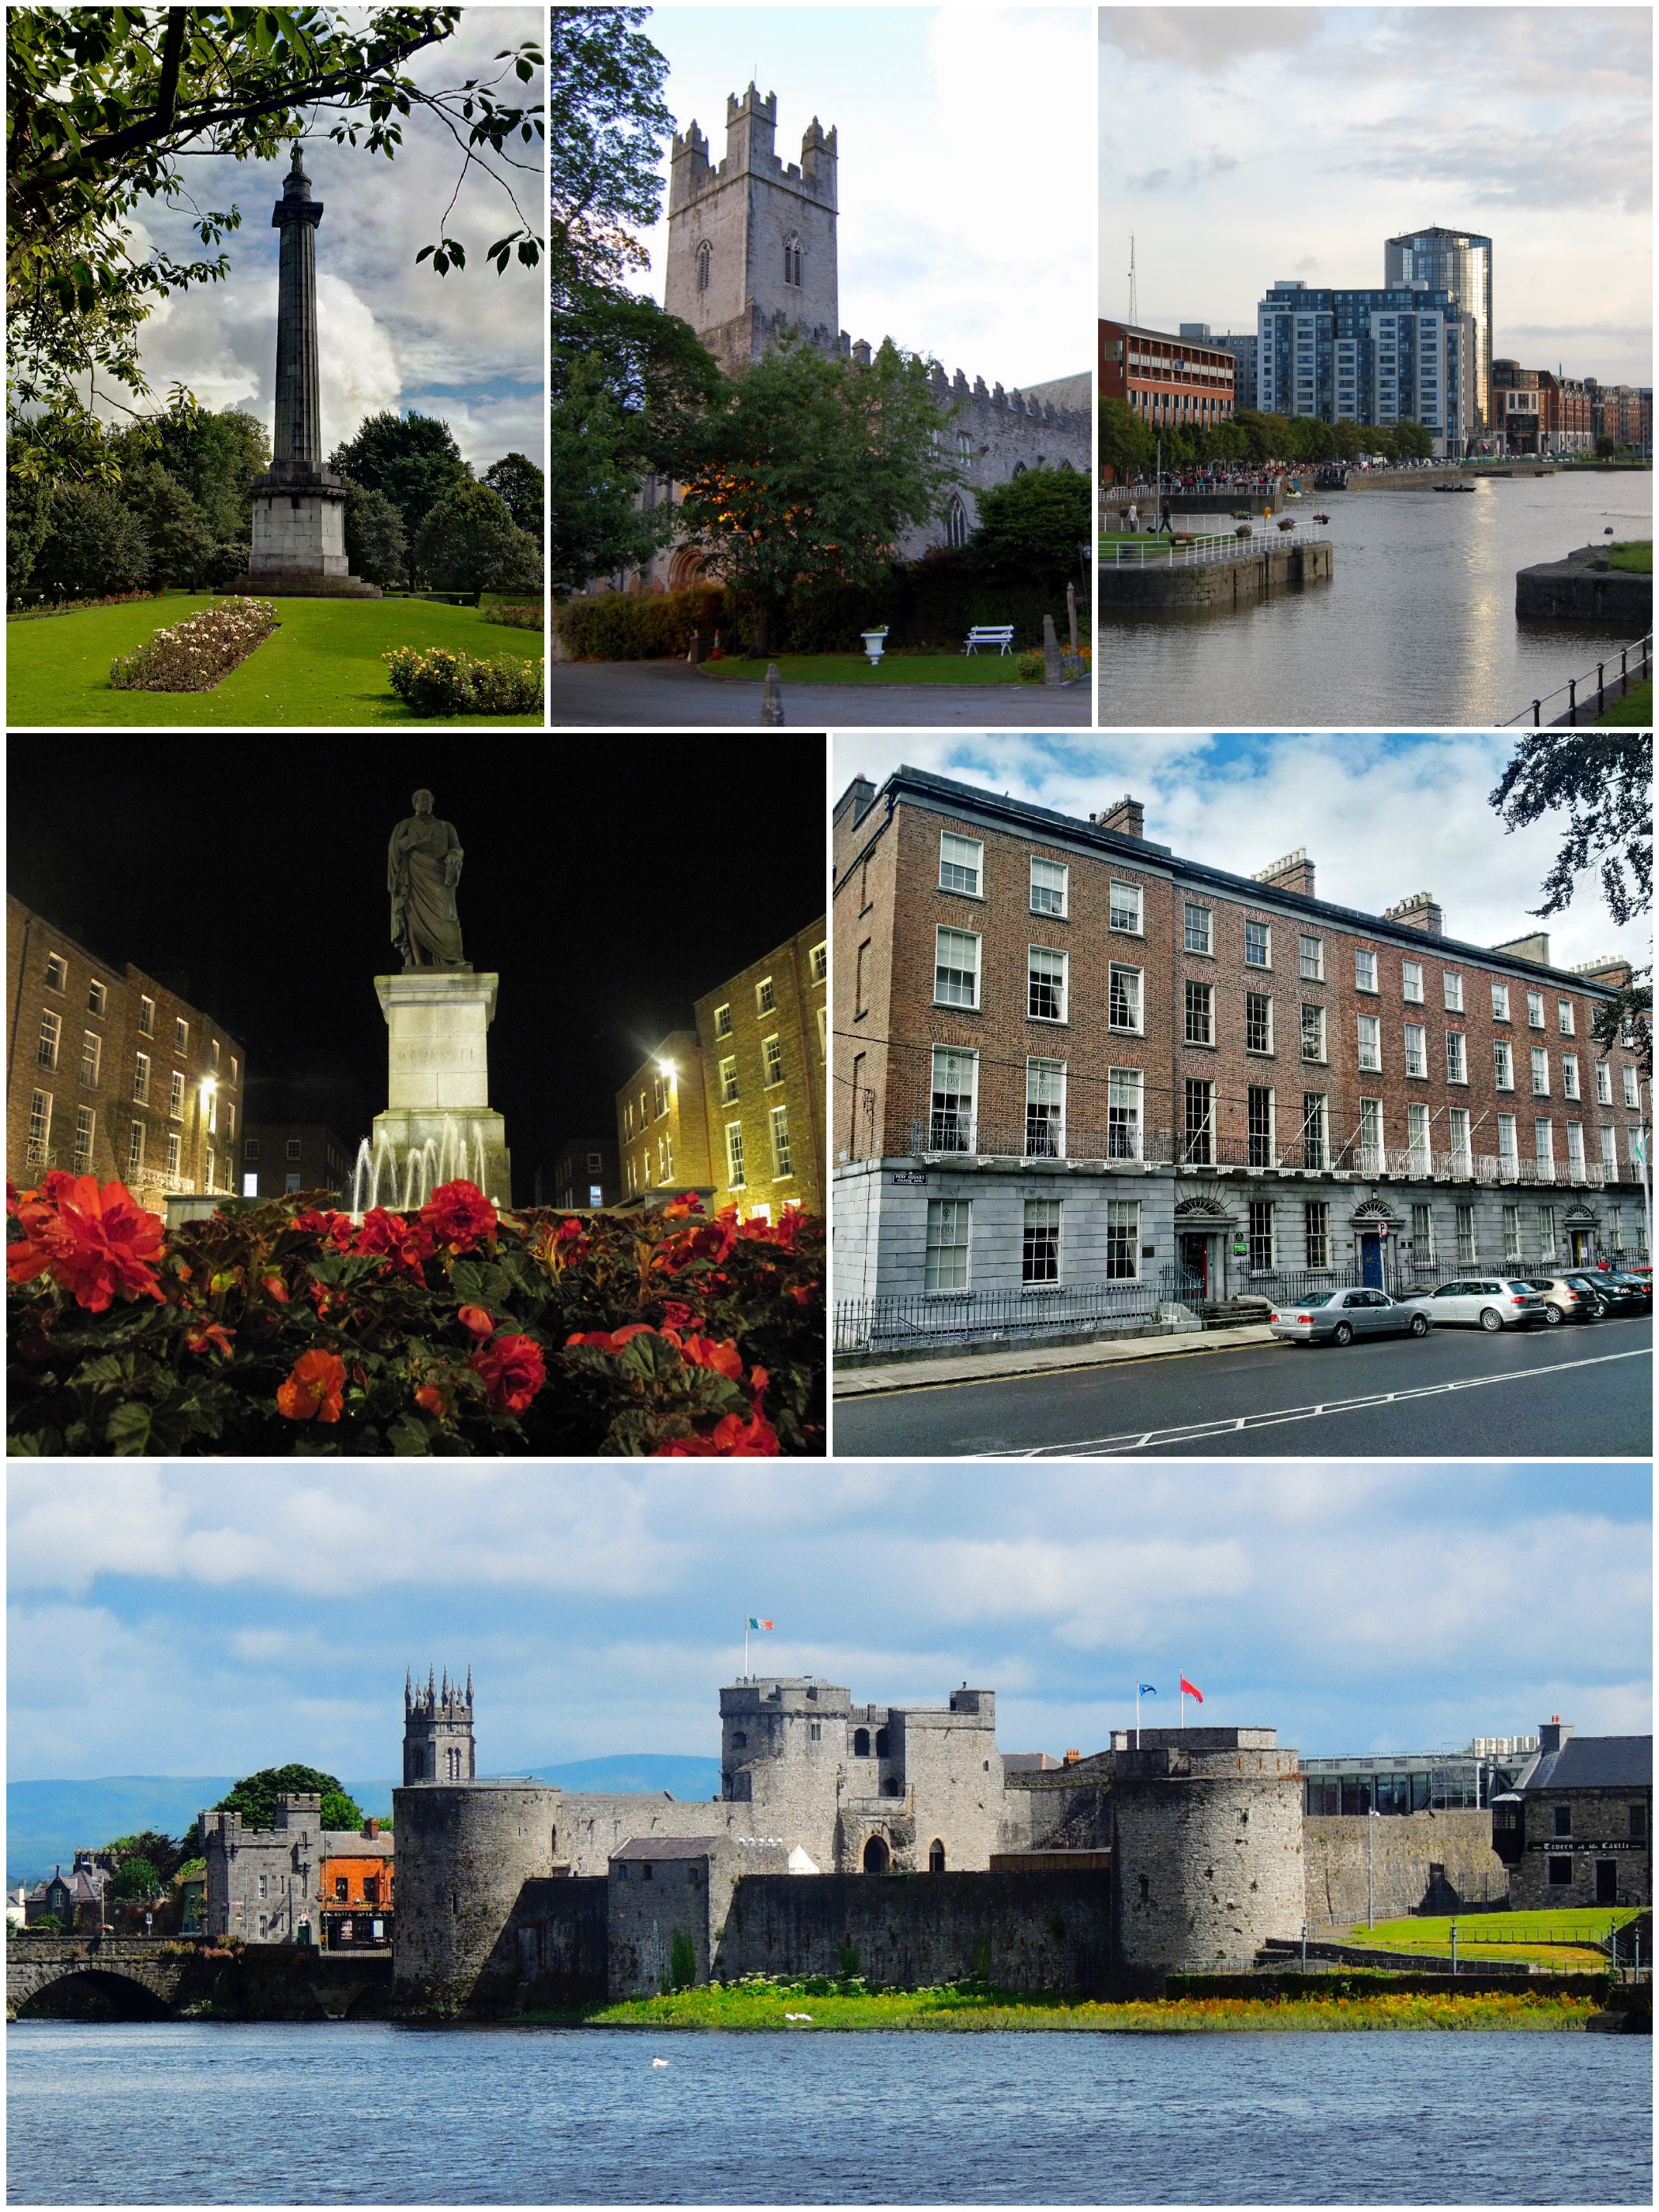 14 Top-Rated Tourist Attractions in Cork | PlanetWare